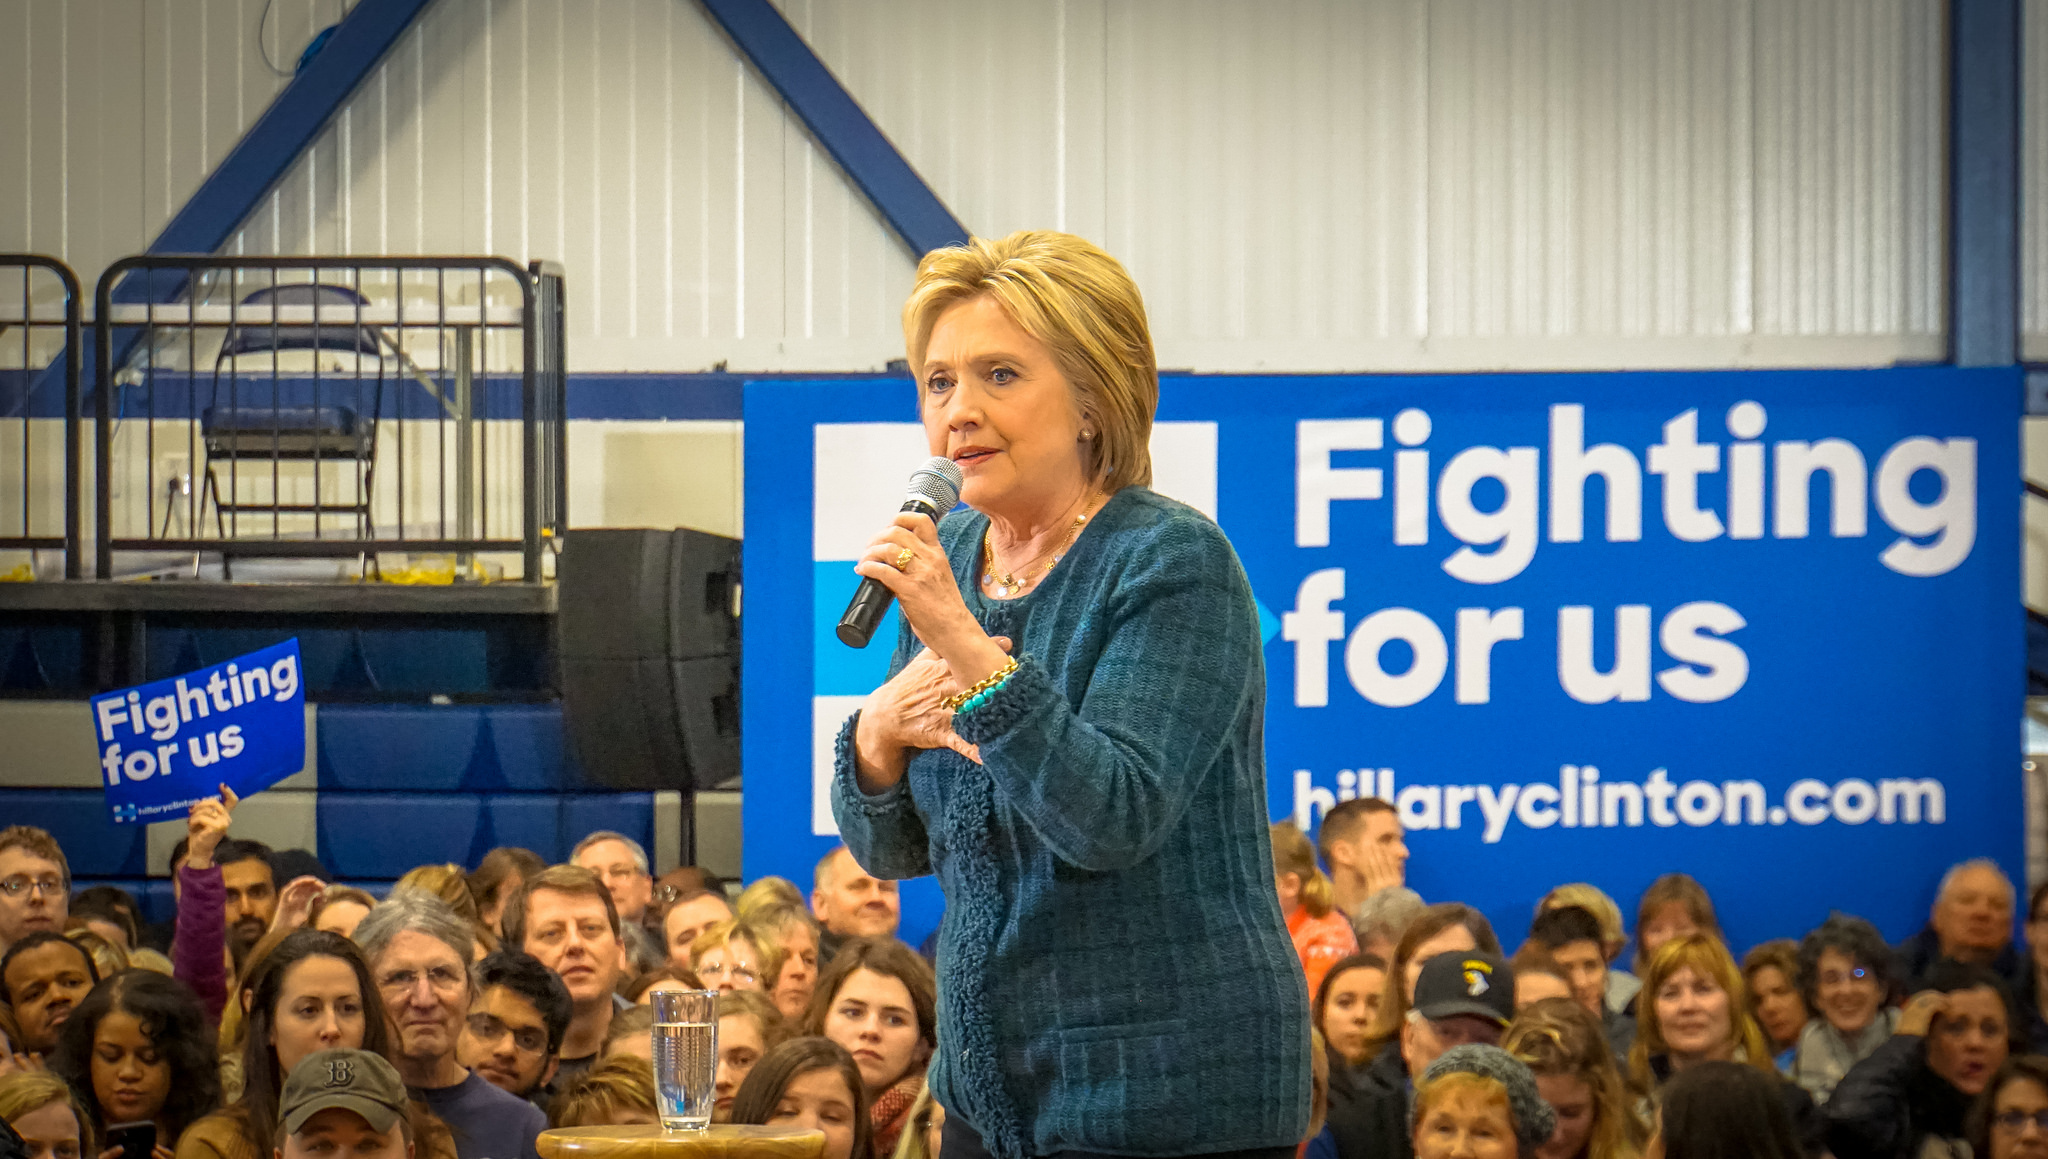 Hillary Clinton campaigns in New Hampshire in February as part of her bid to win the Democratic presidential nomination.